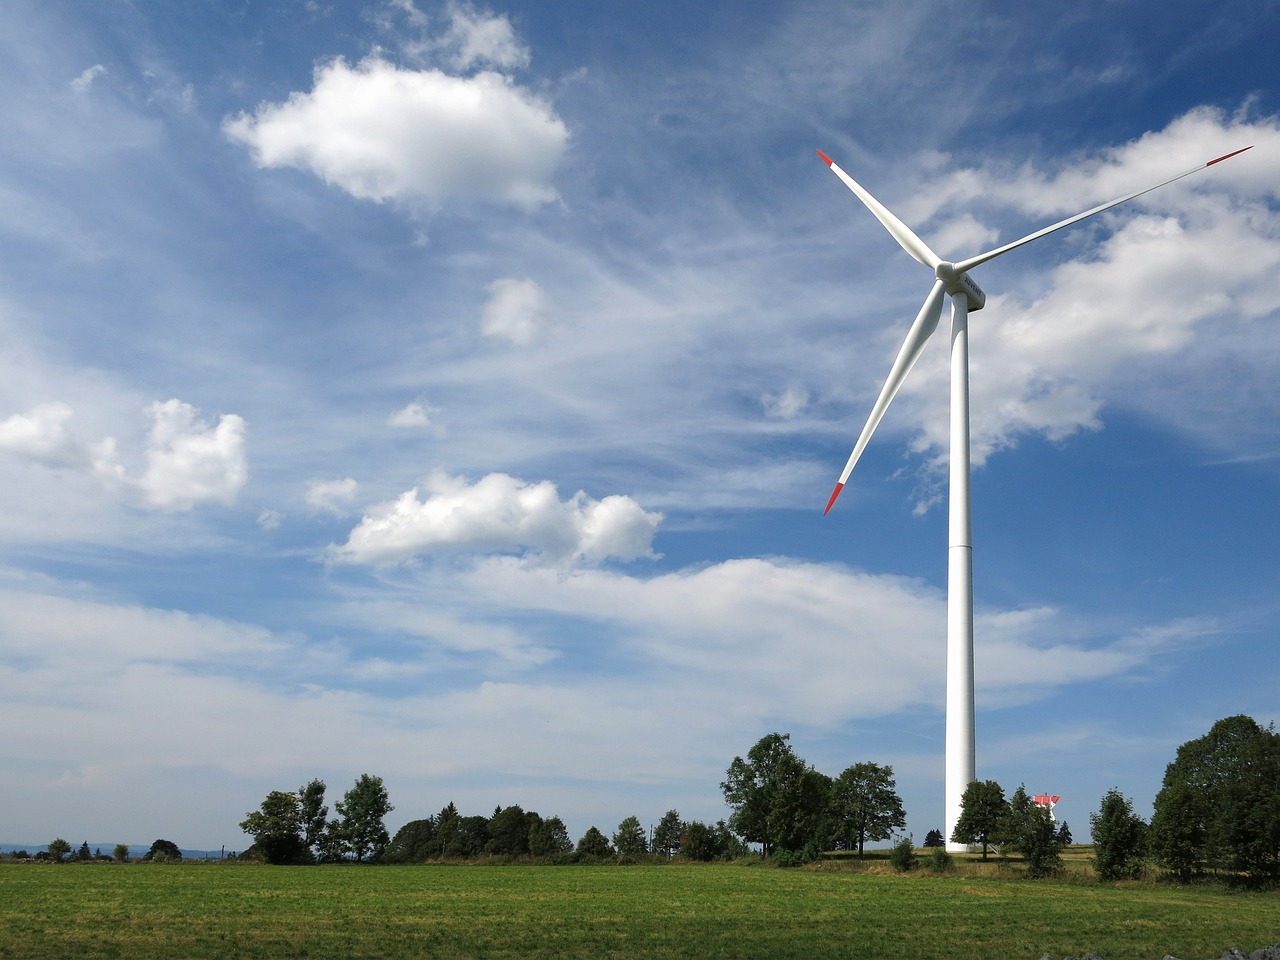 Teaching Our Children About Renewable Energy